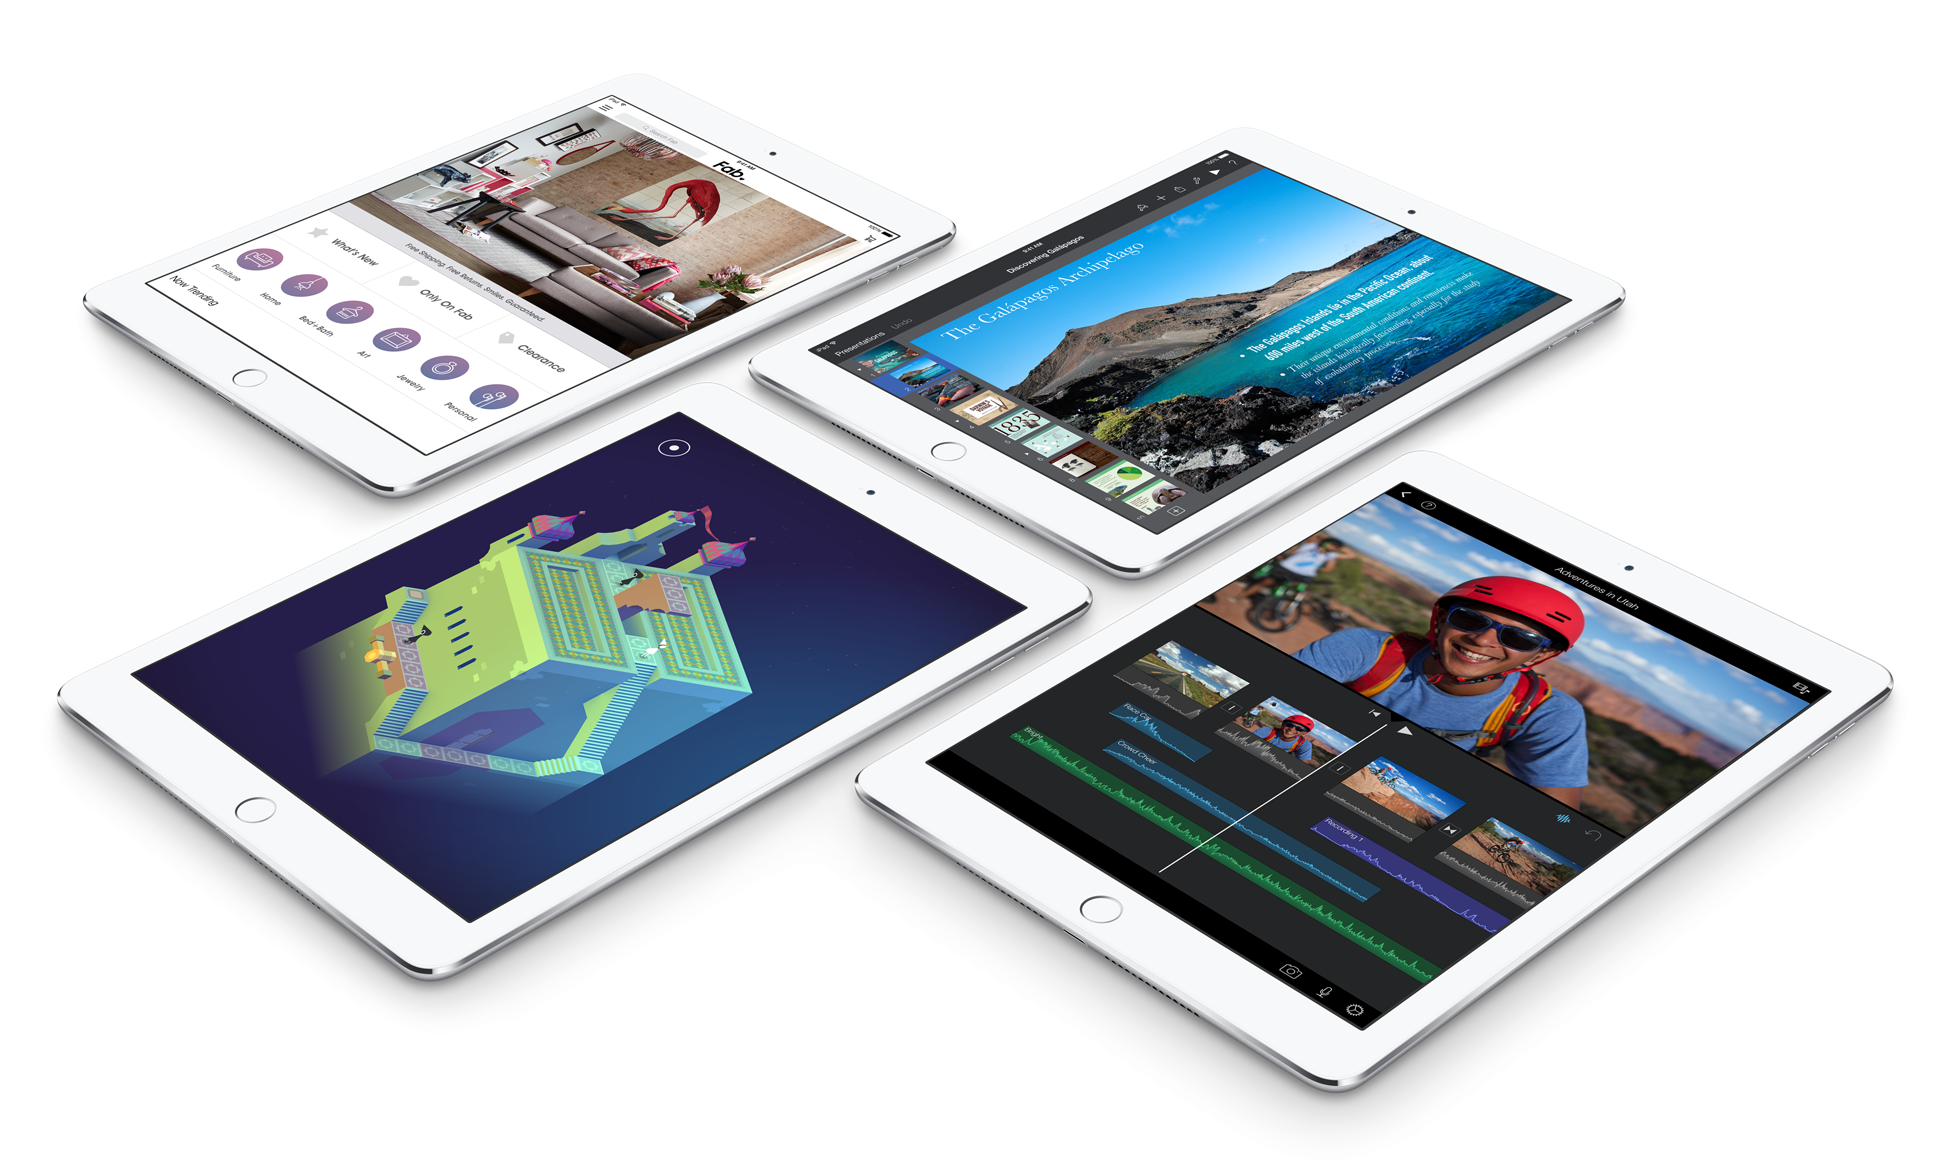 Apple iPad Air 2 group